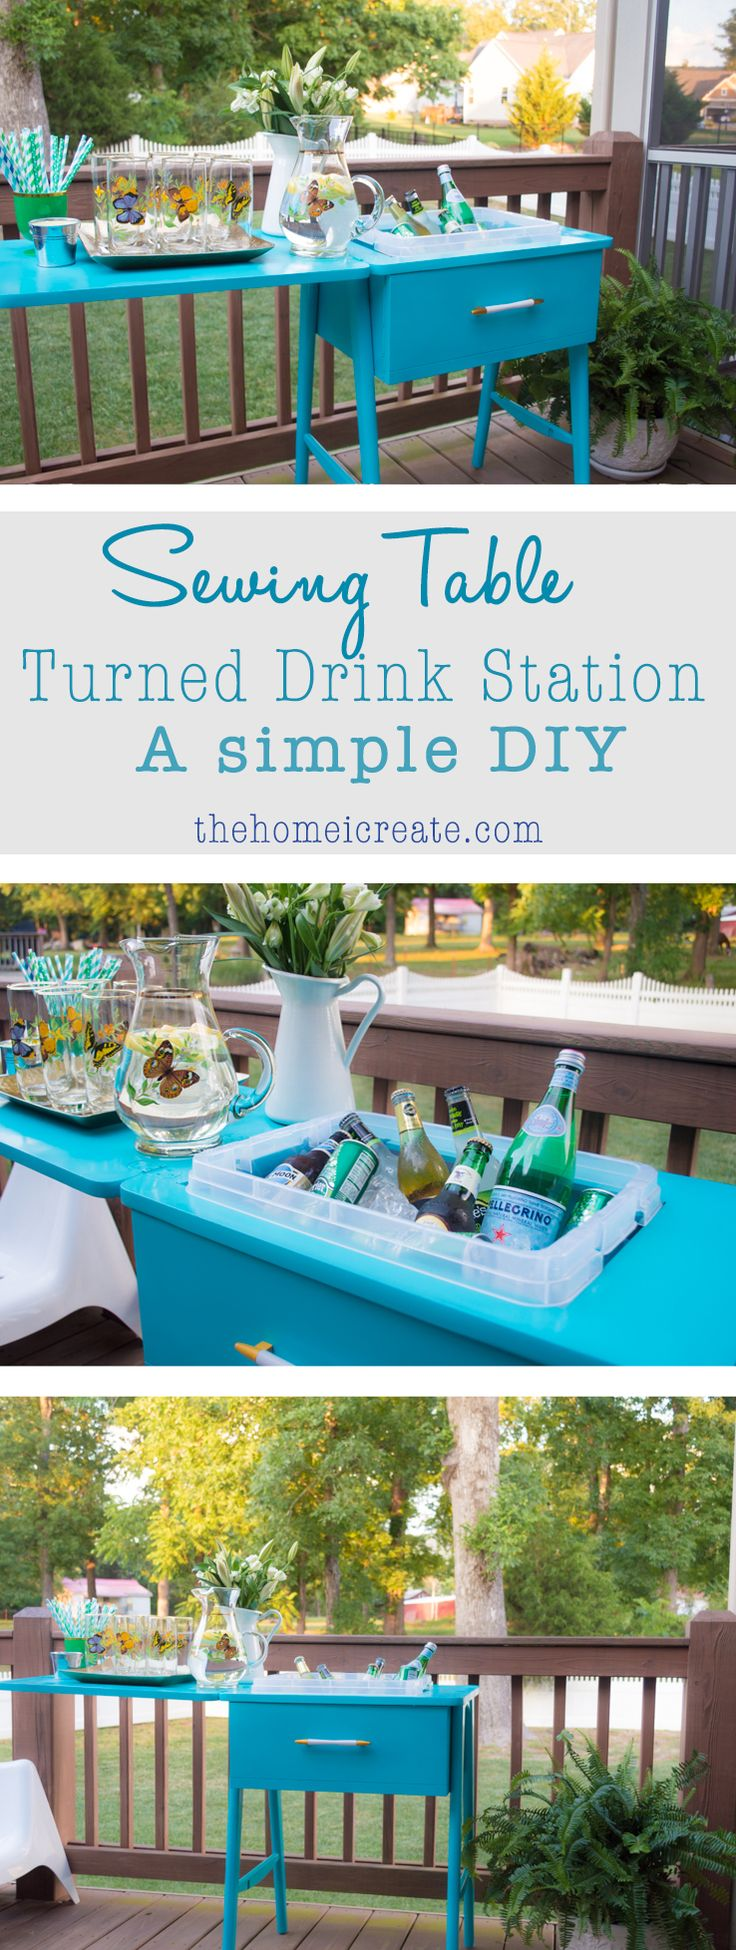 Turn an old sewing table into a drink station with this simple DIY! When not in use, you can easily use it as a side table! Never skip over this thrift store staple again! | thehomeicreate.com